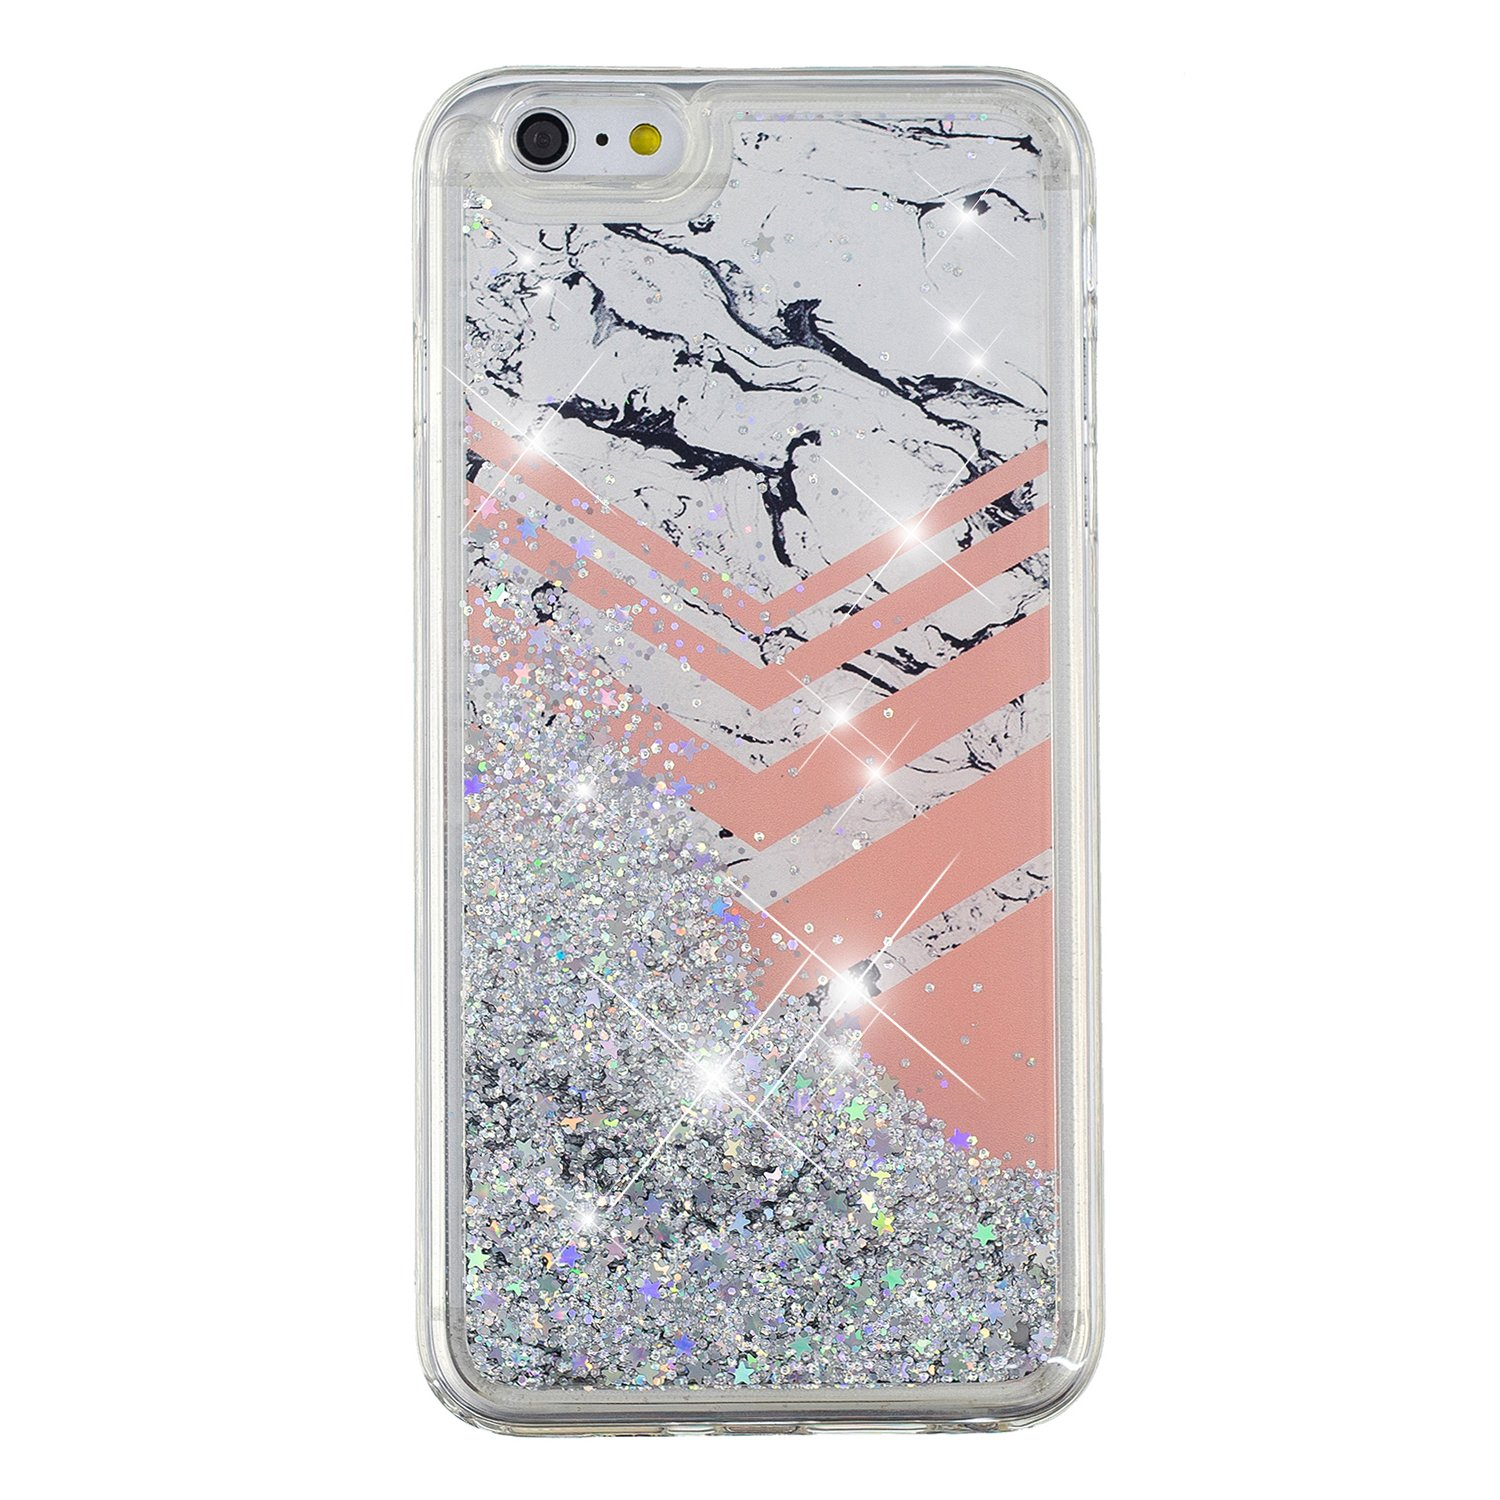 cheaper cf9fe f4d22 Amazon.com: for iPhone 5 5S Case with Screen Protector,iPhone SE ...